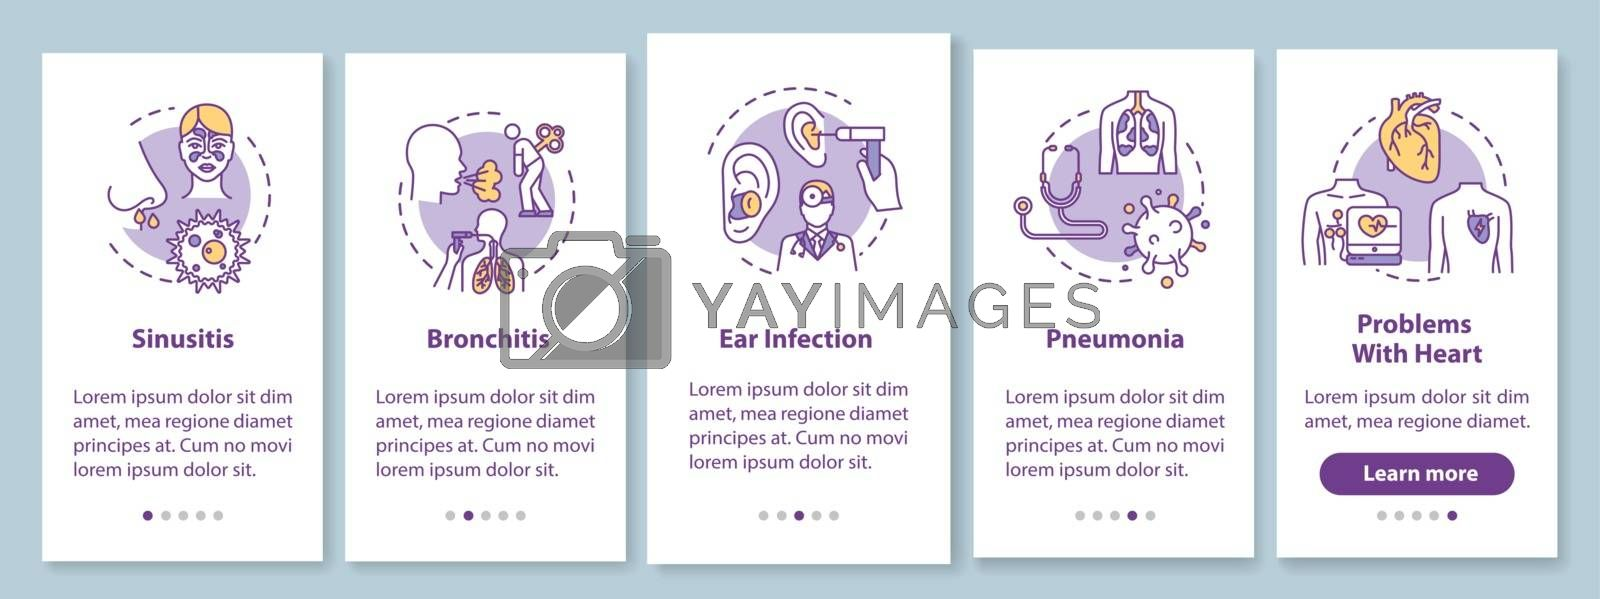 Flu symptoms onboarding mobile app page screen with concepts. Sinusitis bronchitis. Influenza walkthrough 5 steps graphic instructions. UI vector template with RGB color illustrations